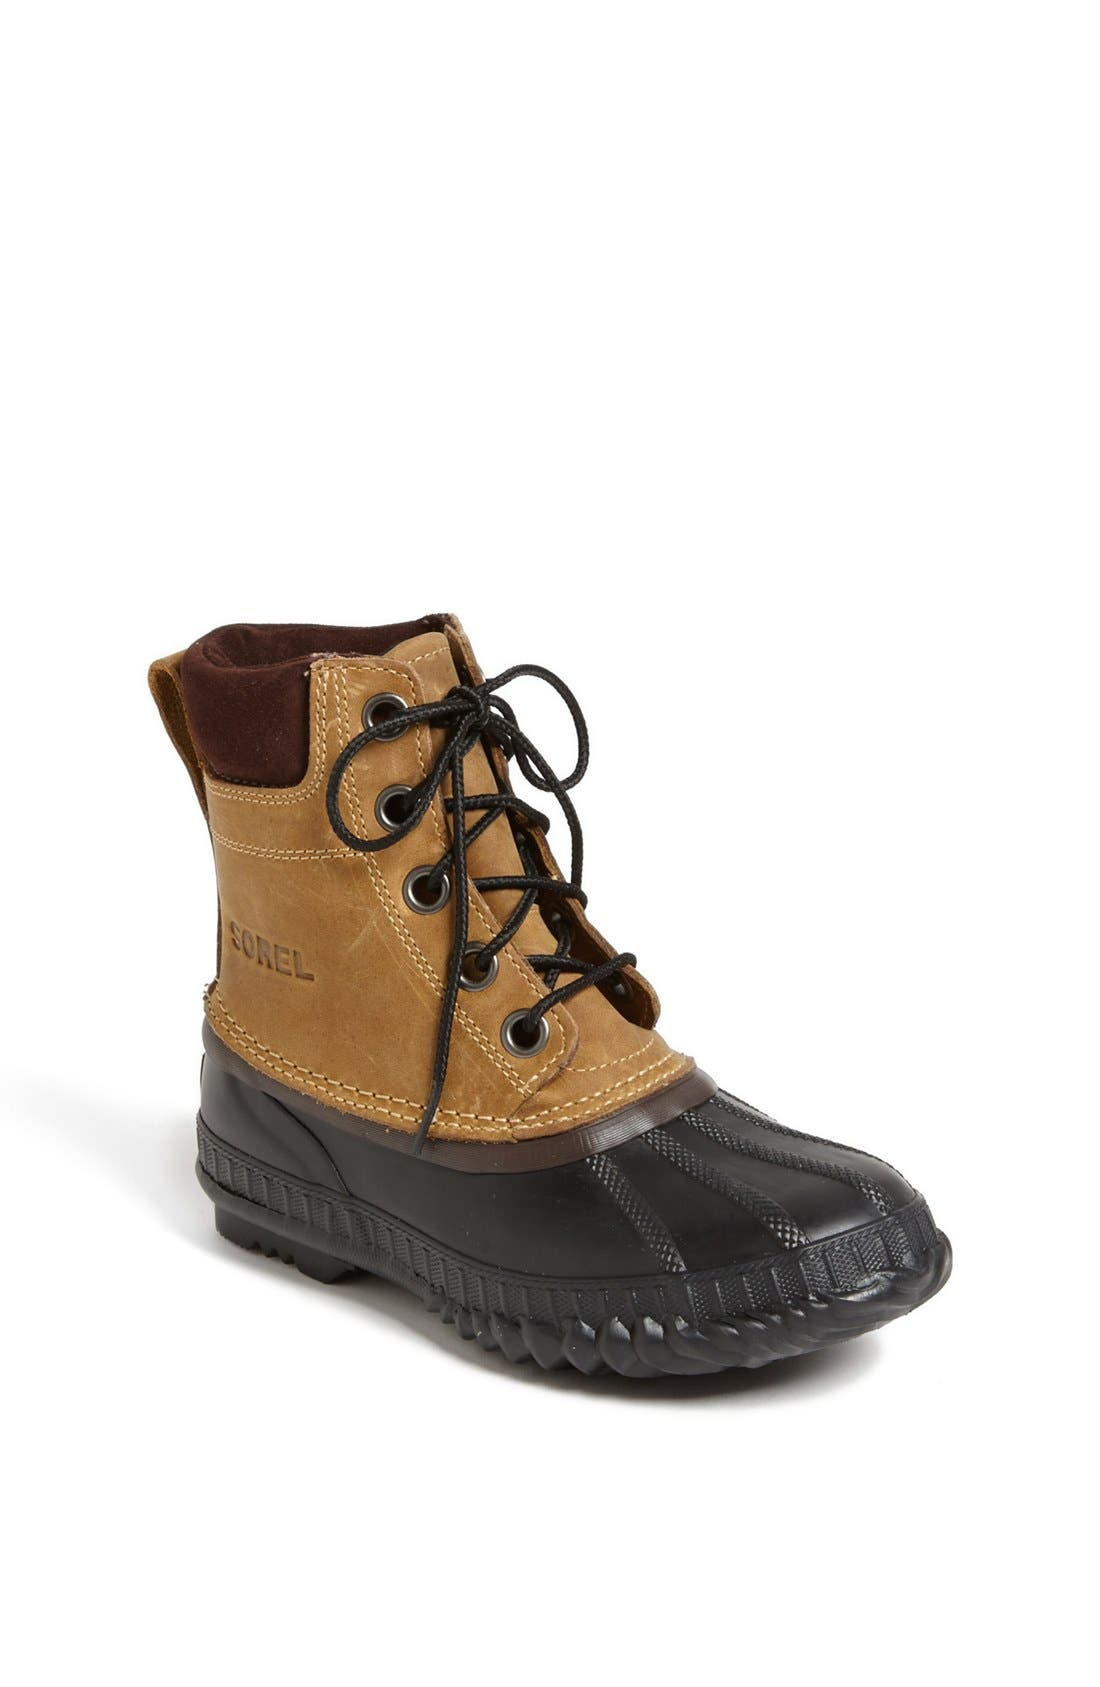 Main Image - SOREL 'Cheyenne' Boot (Little Kid & Big Kid)